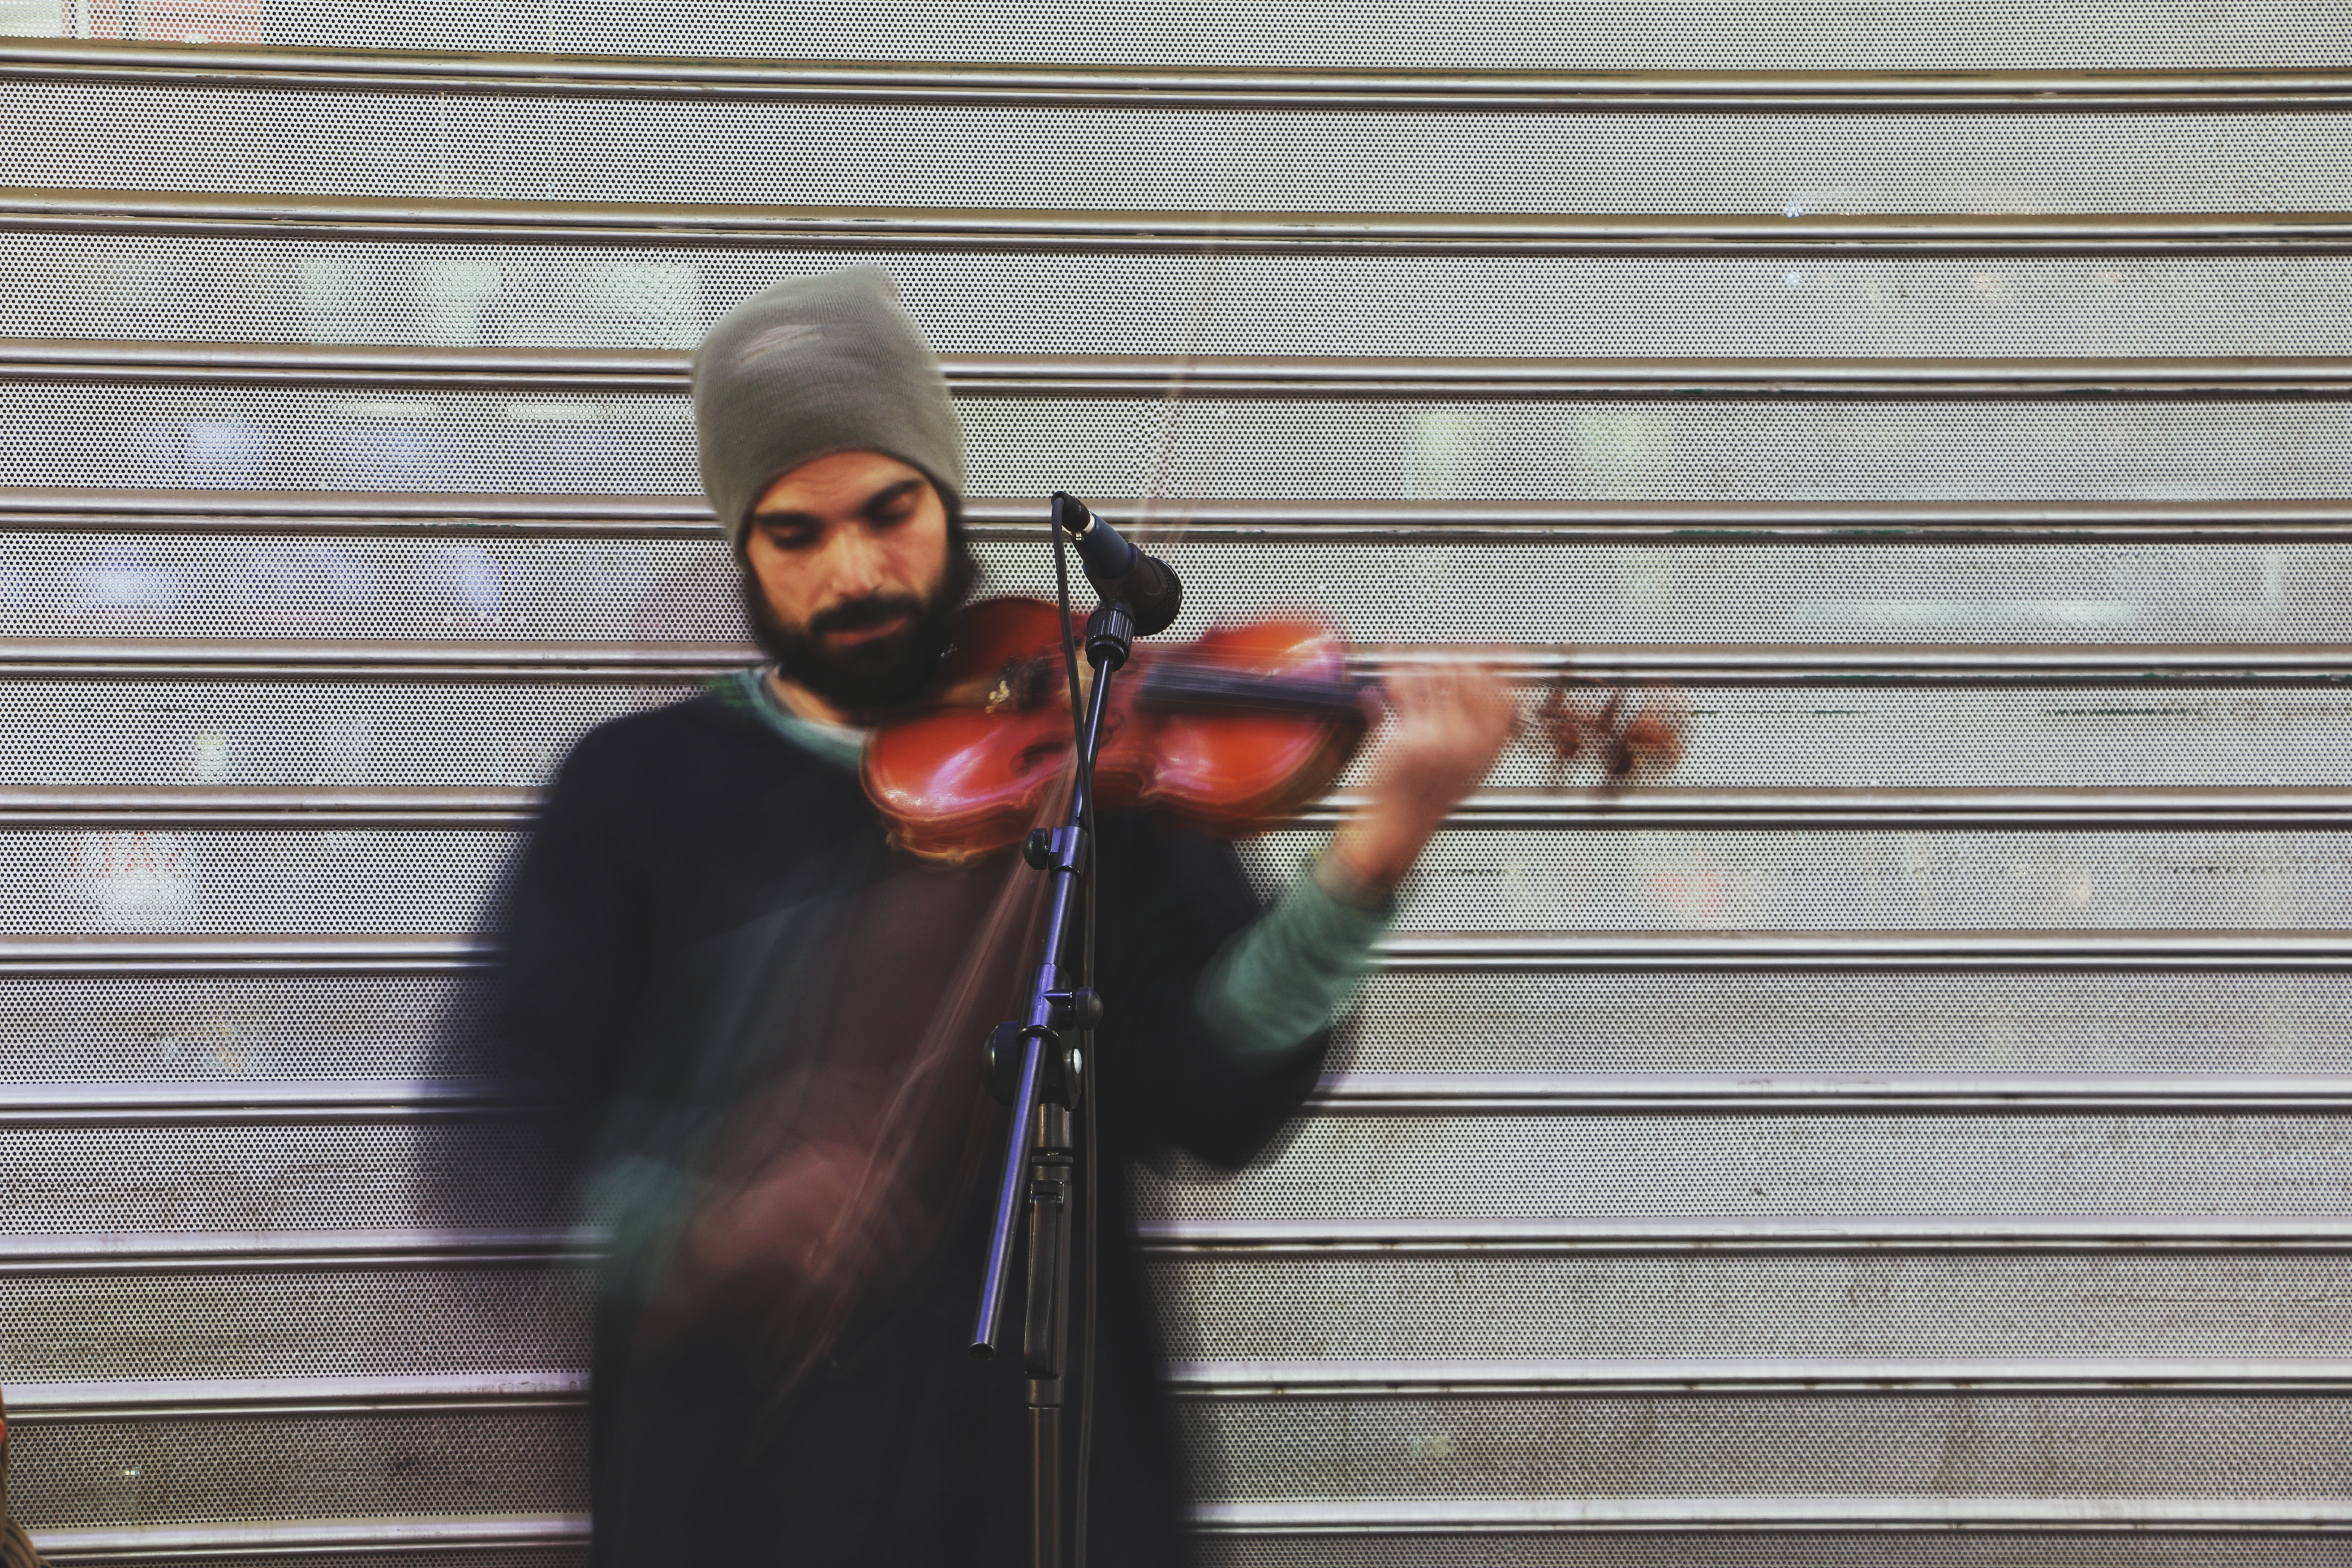 A bearded man in a beanie playing a violin next to a microphone in Golestan Shopping Center